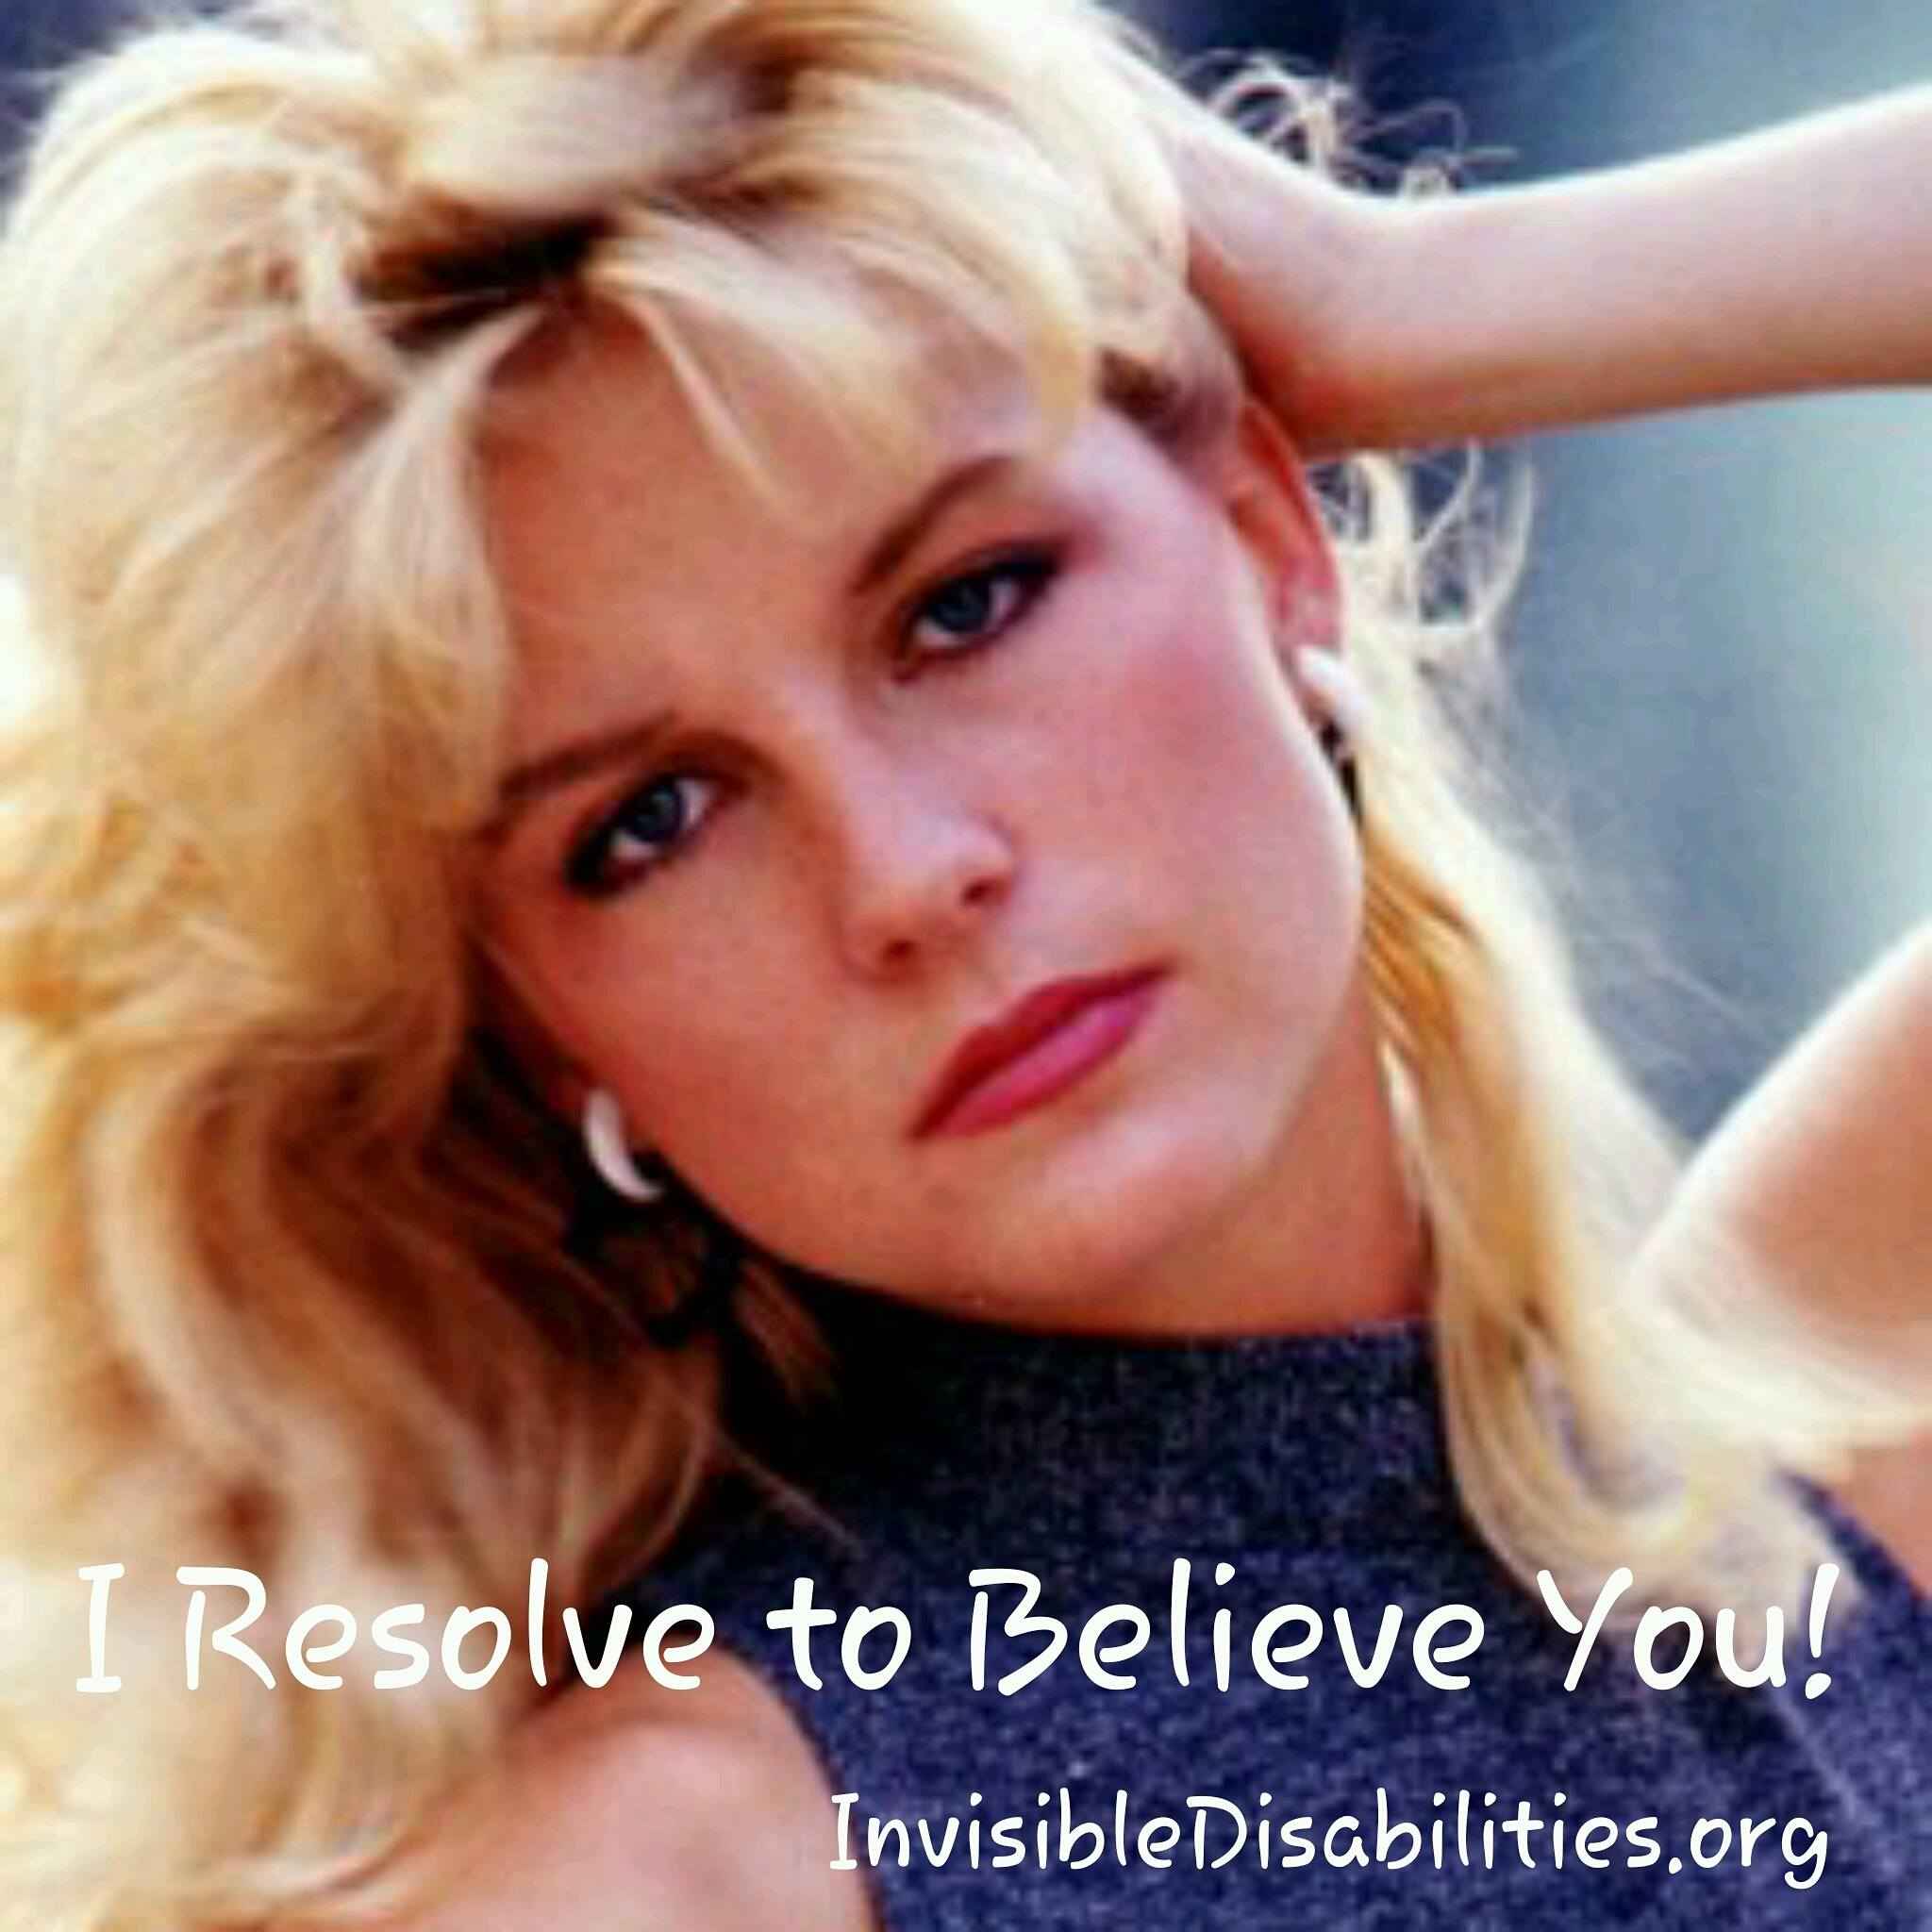 I Resolve to Believe You